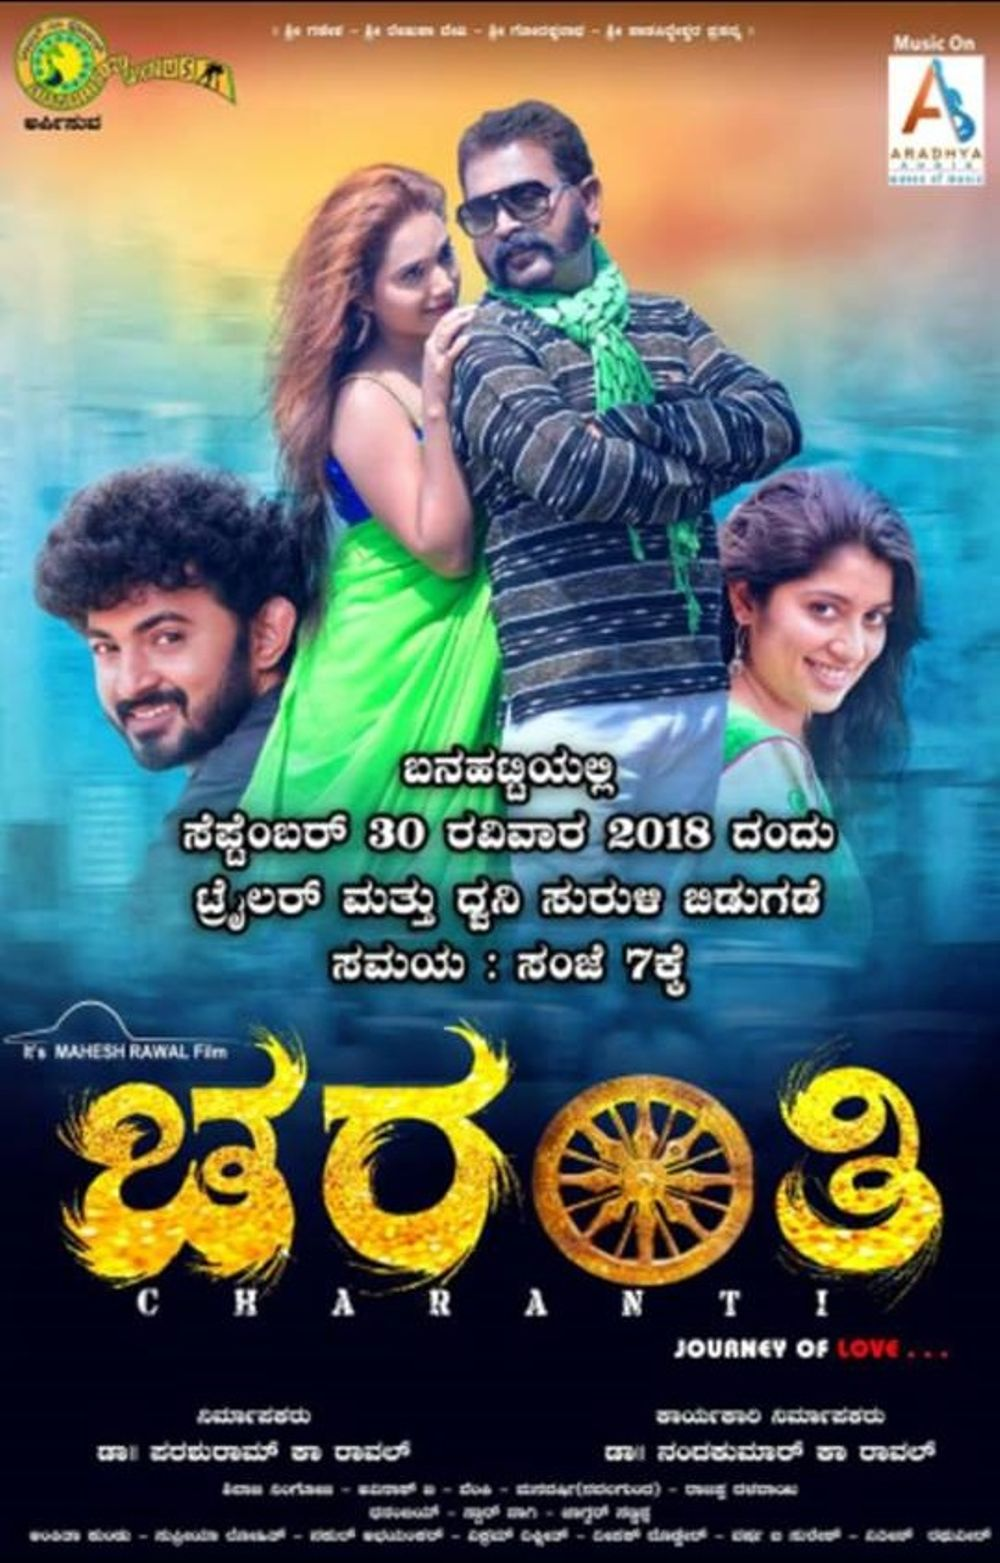 Charanti Movie Review Kannada Movie Review